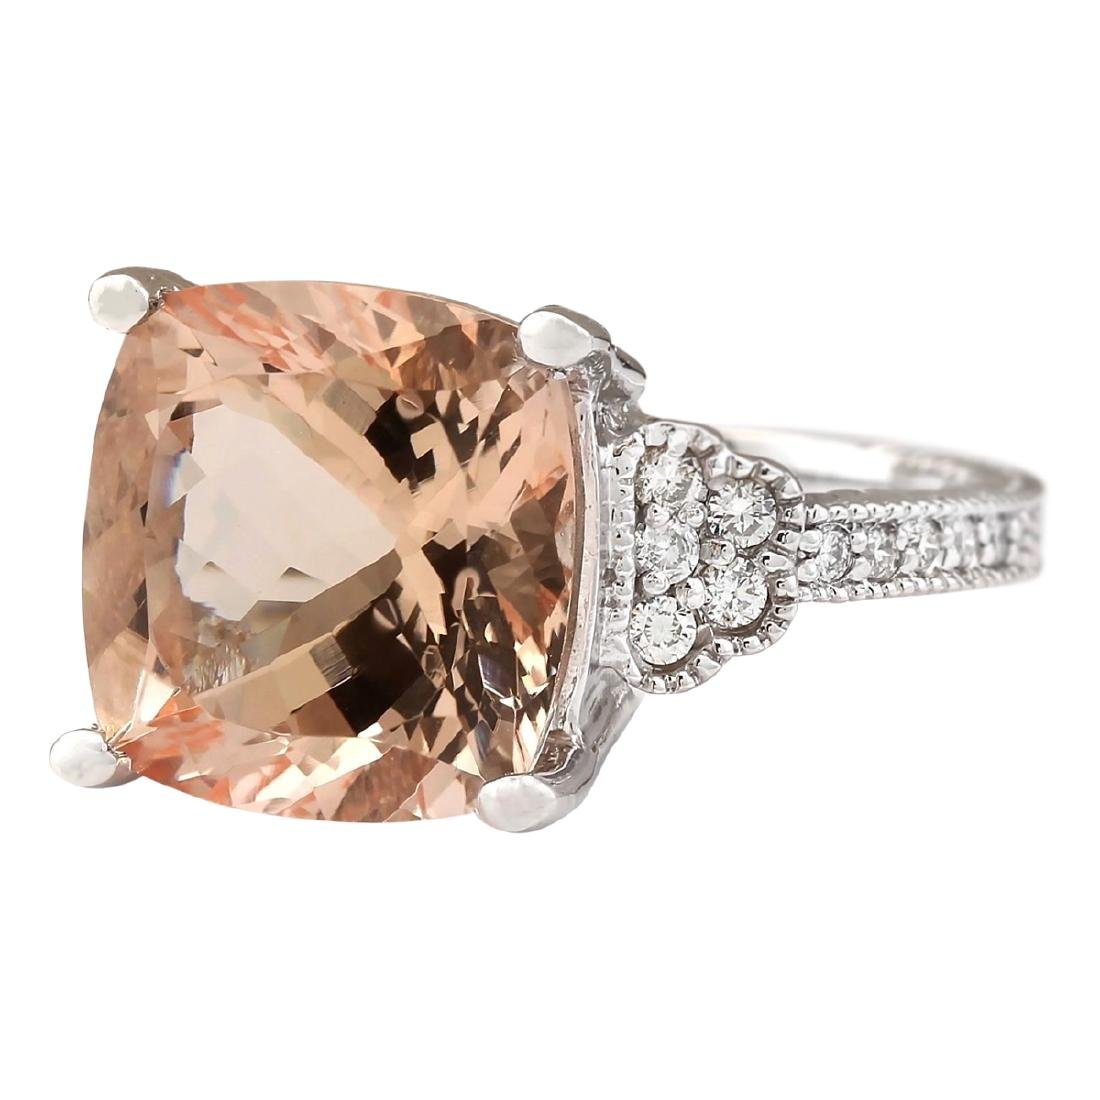 8.11 CTW Natural Morganite And Diamond Ring In 18K - 2